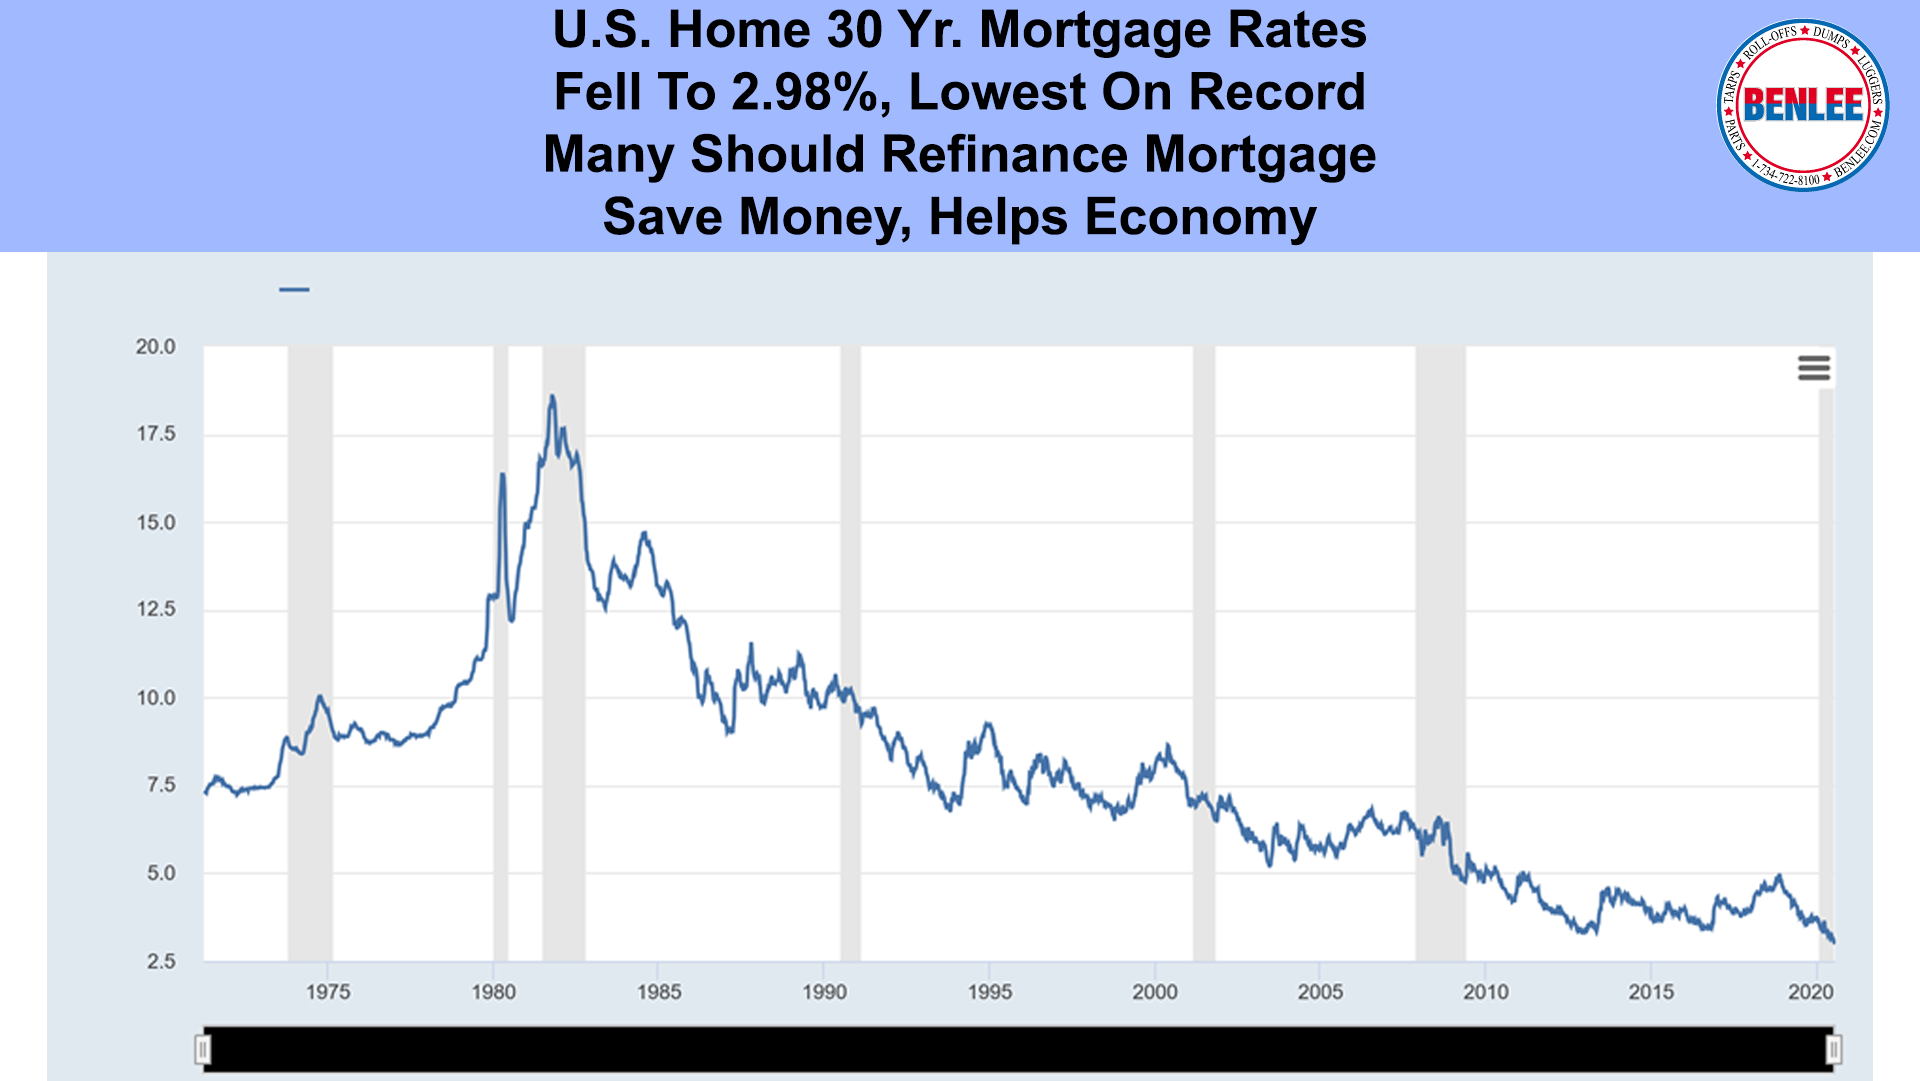 U.S. Home 30 Yr. Mortgage Rates